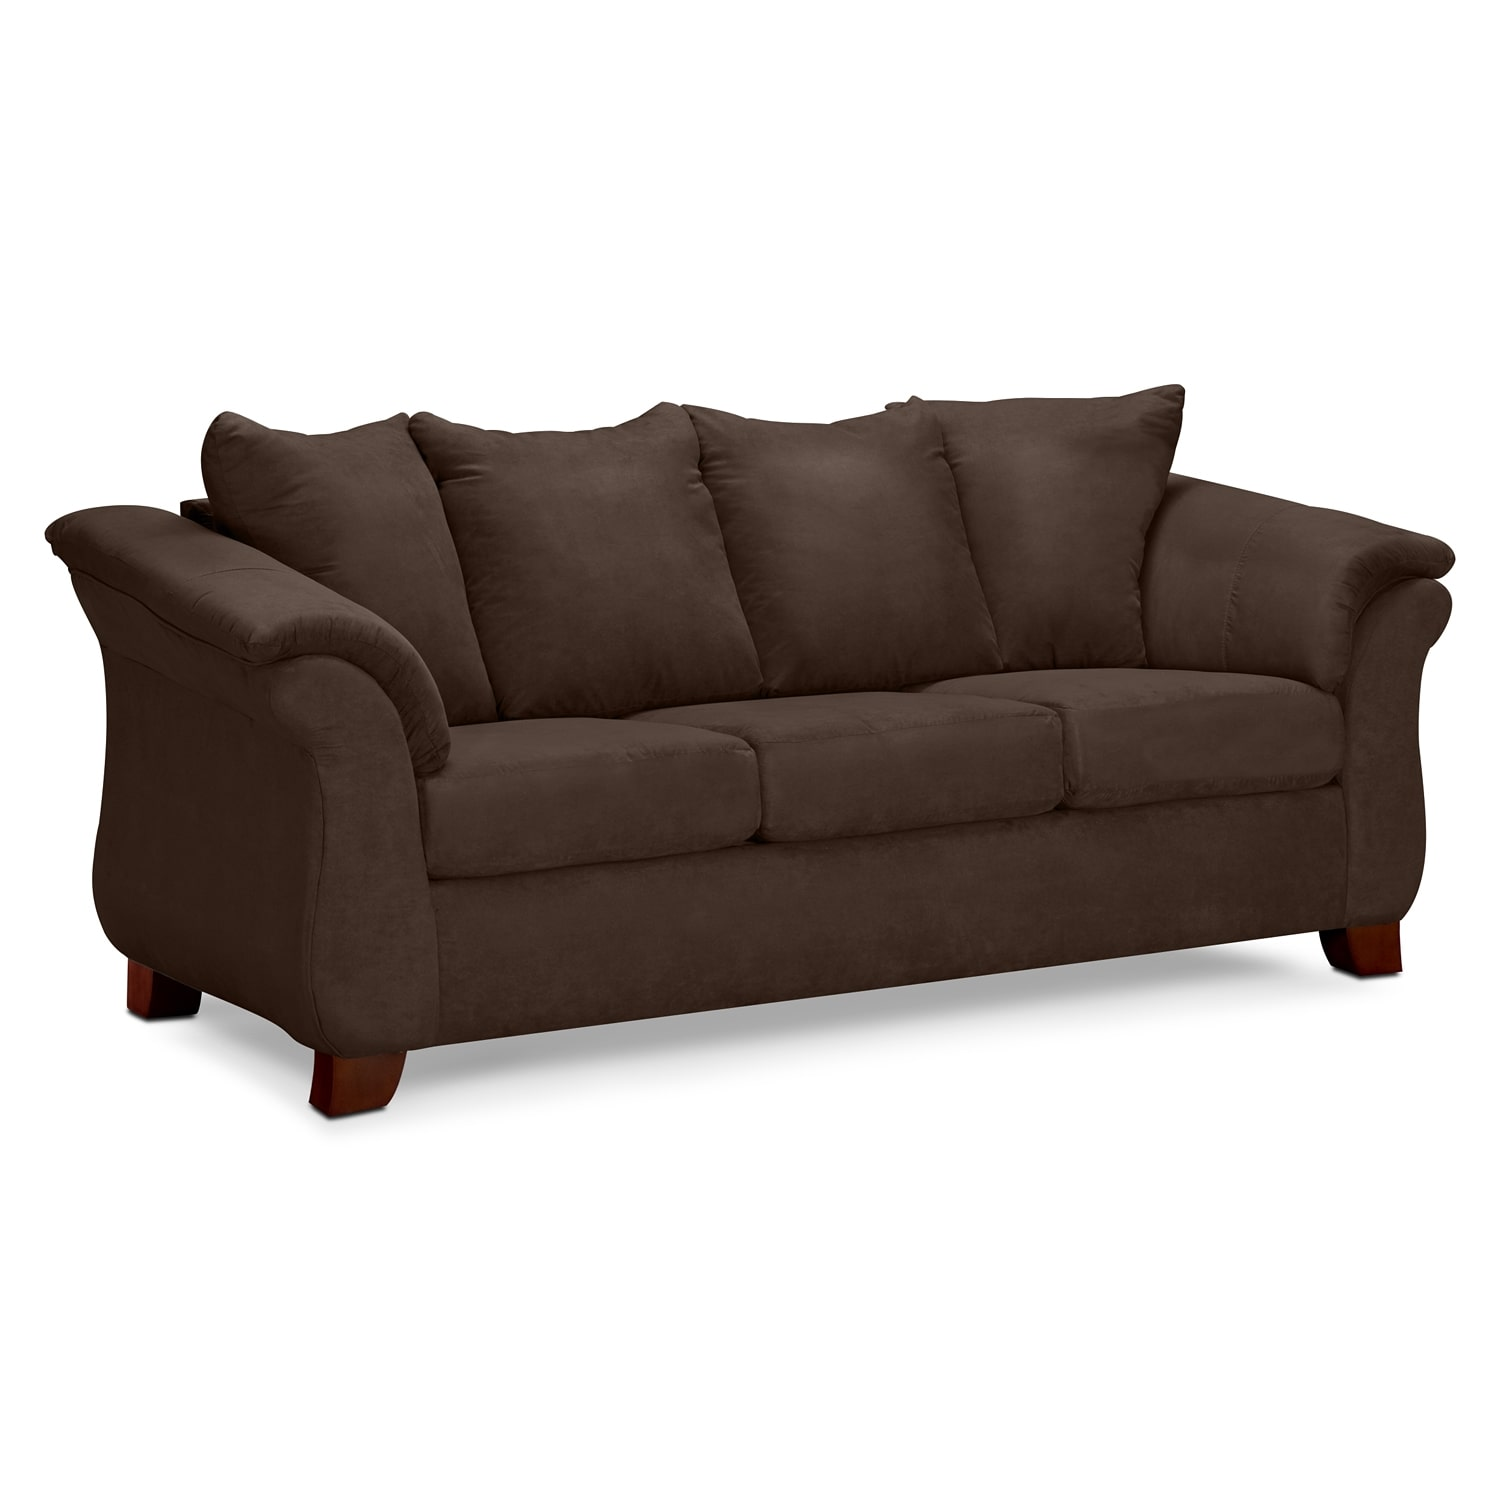 Adrian sofa chocolate american signature furniture for Signature furniture